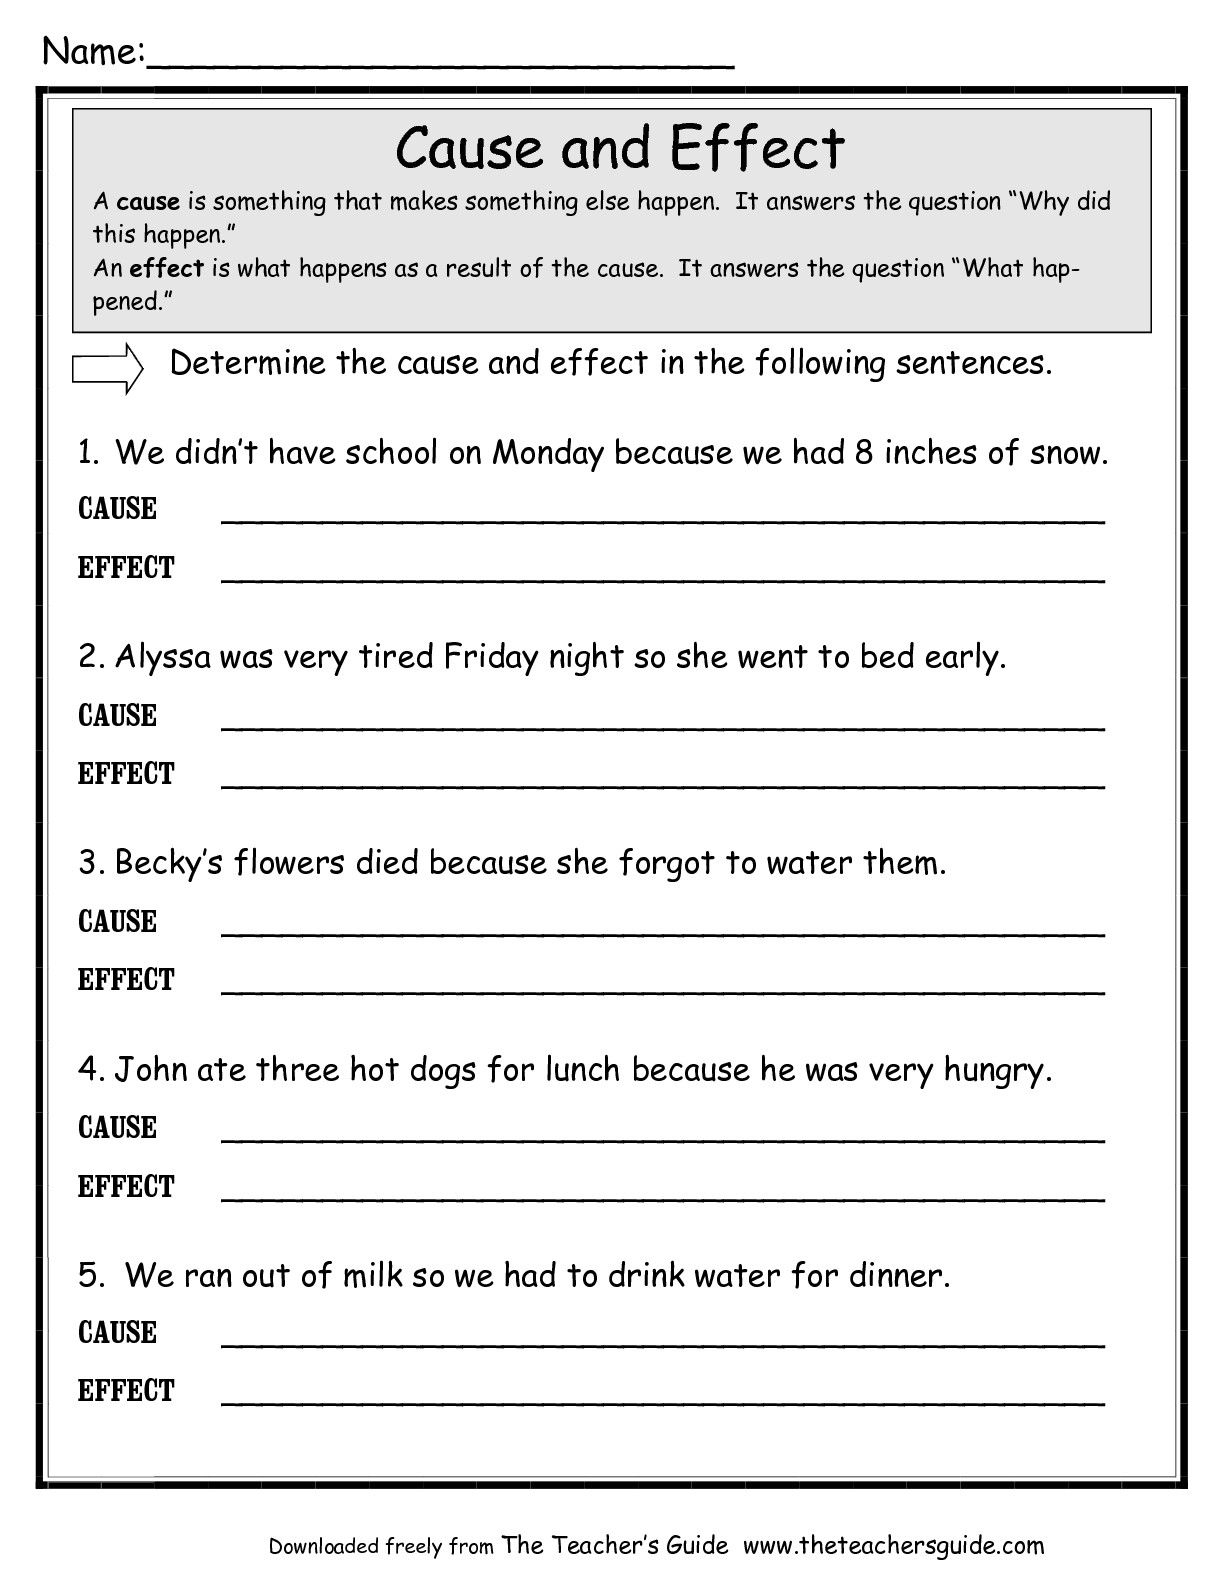 Free Printable Cause And Effect Worksheets For Third Grade